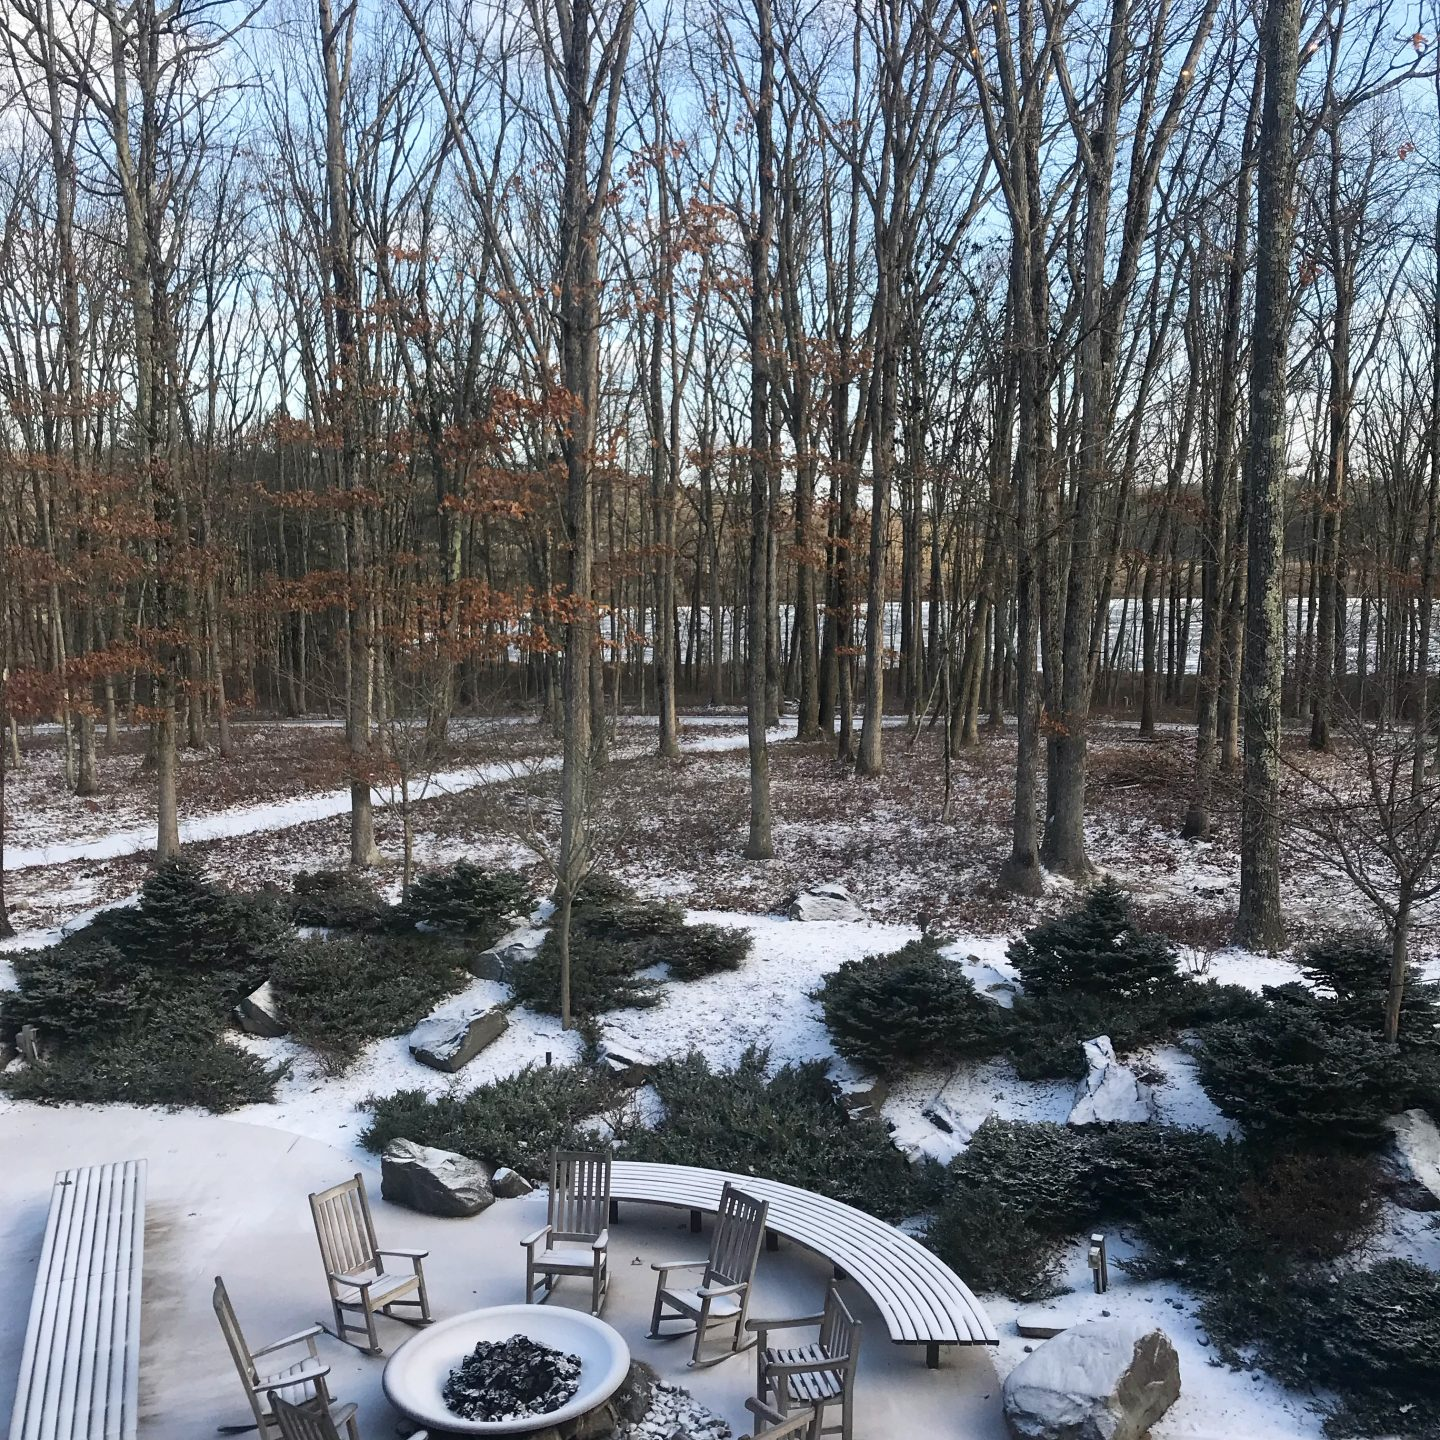 Our Wellness Retreat: The Lodge at Woodloch